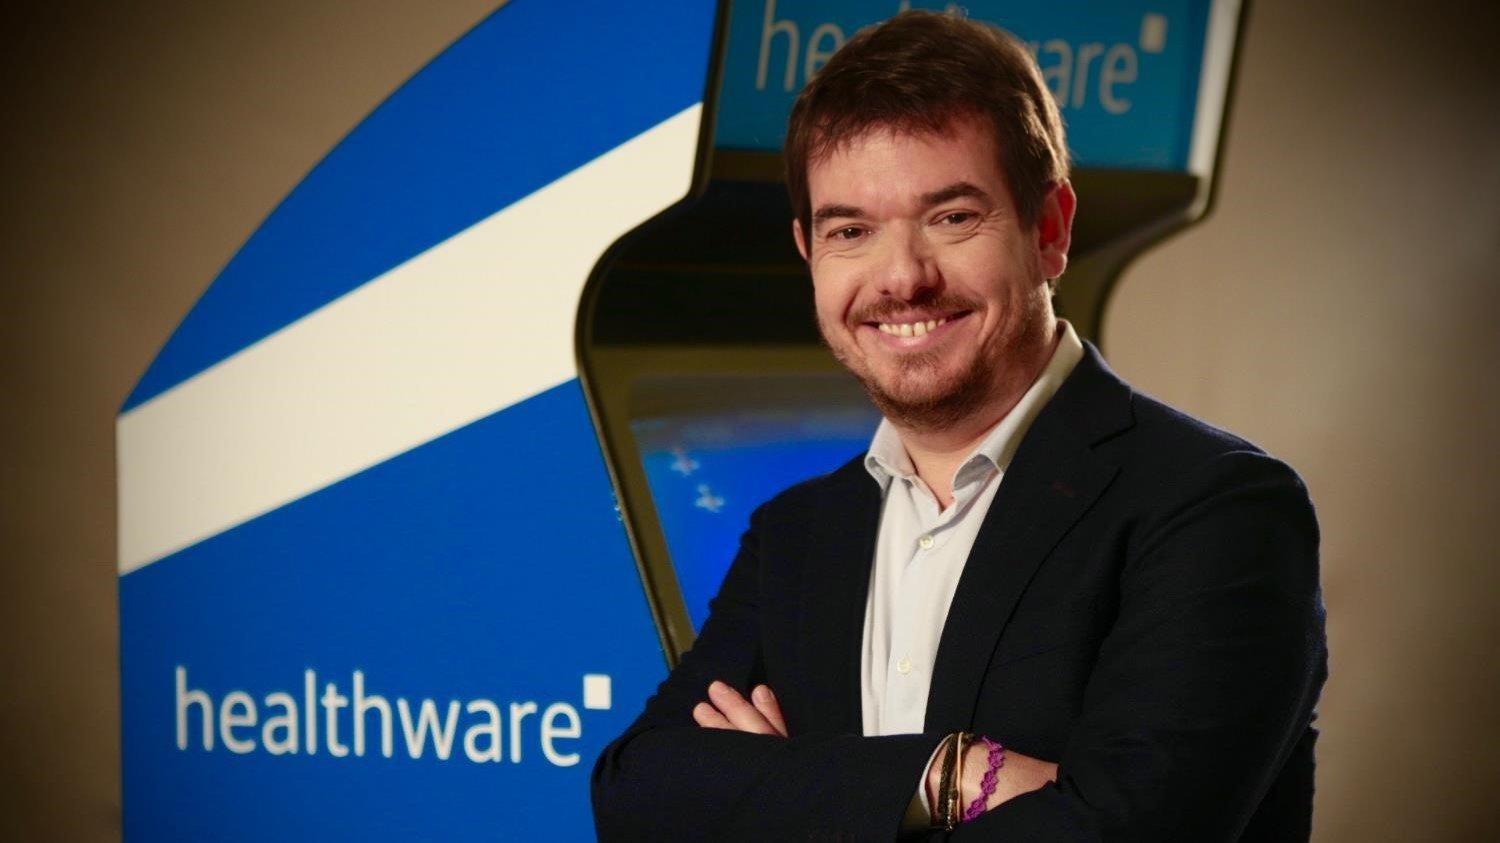 Intouch Solutions e Healthware International annunciano una nuova joint venture globale